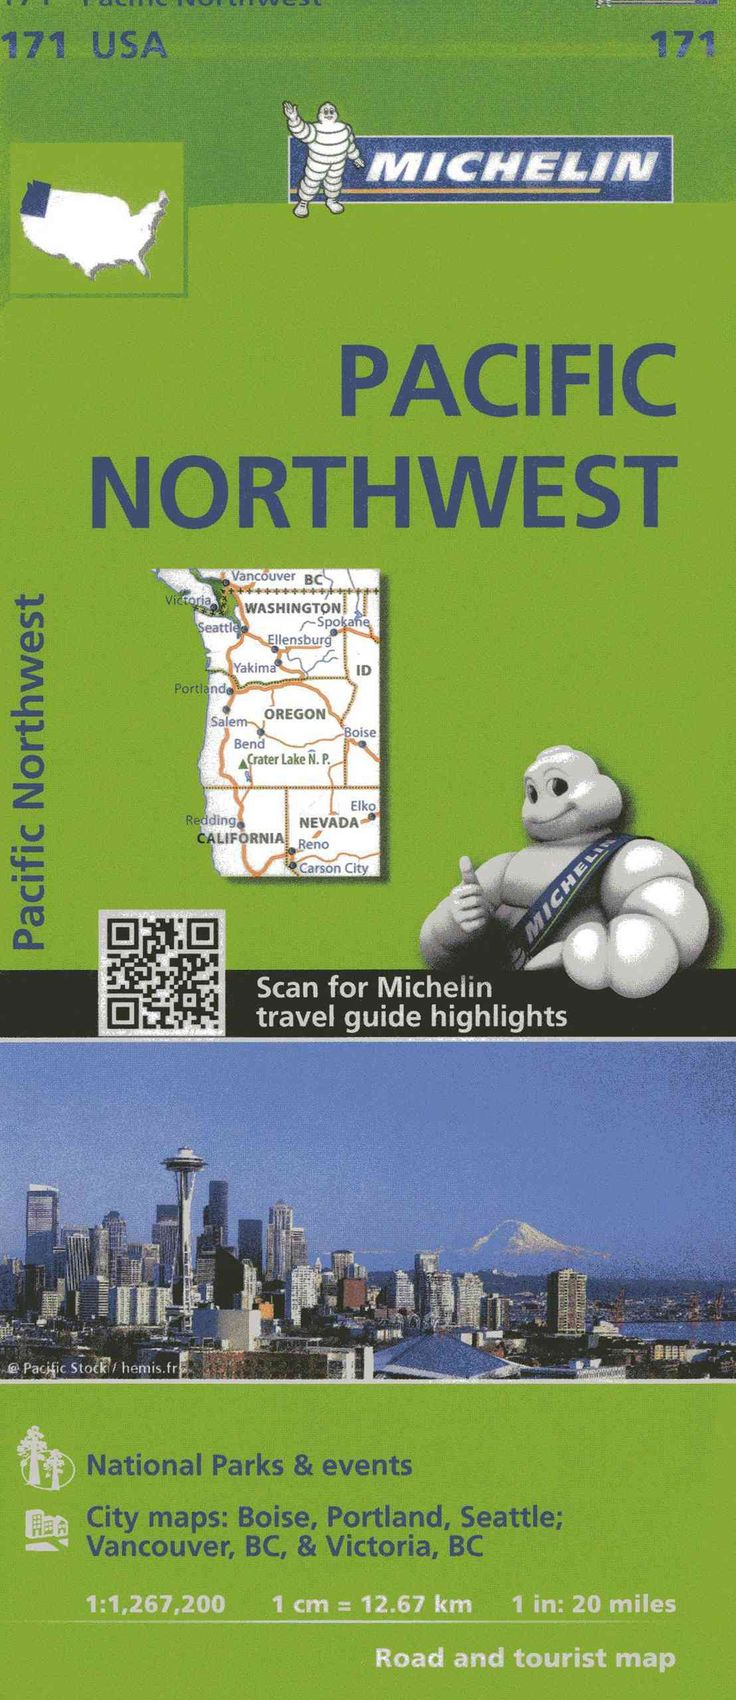 Best Ideas About Pacific Northwest Map On Pinterest Map Of - Map of pacific northwest usa